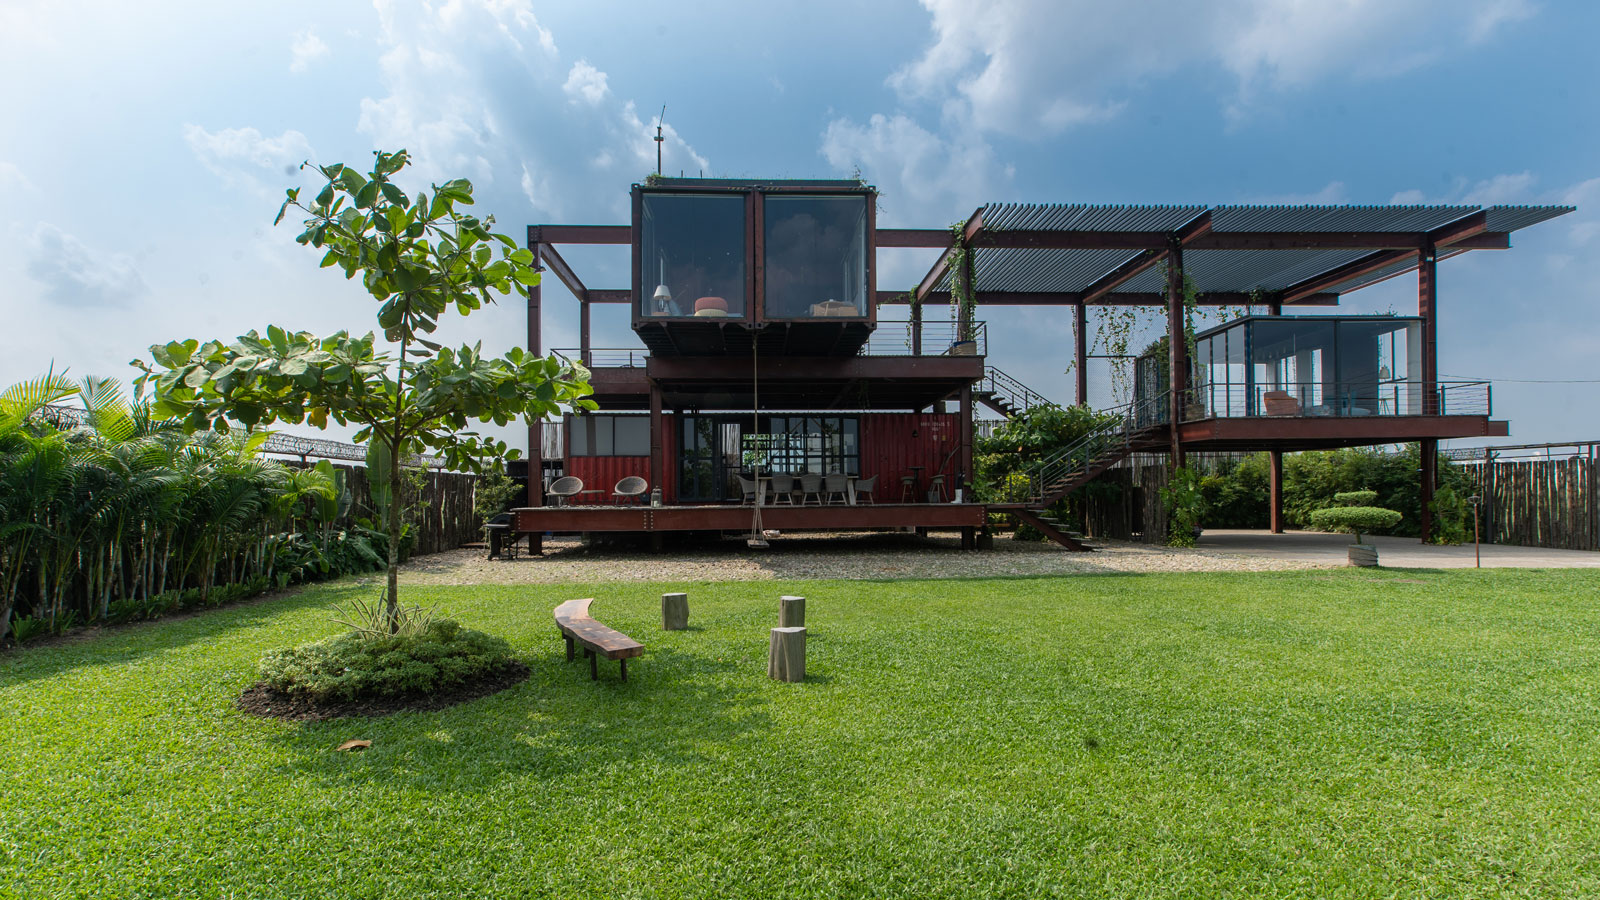 Shipping container house on green lawn